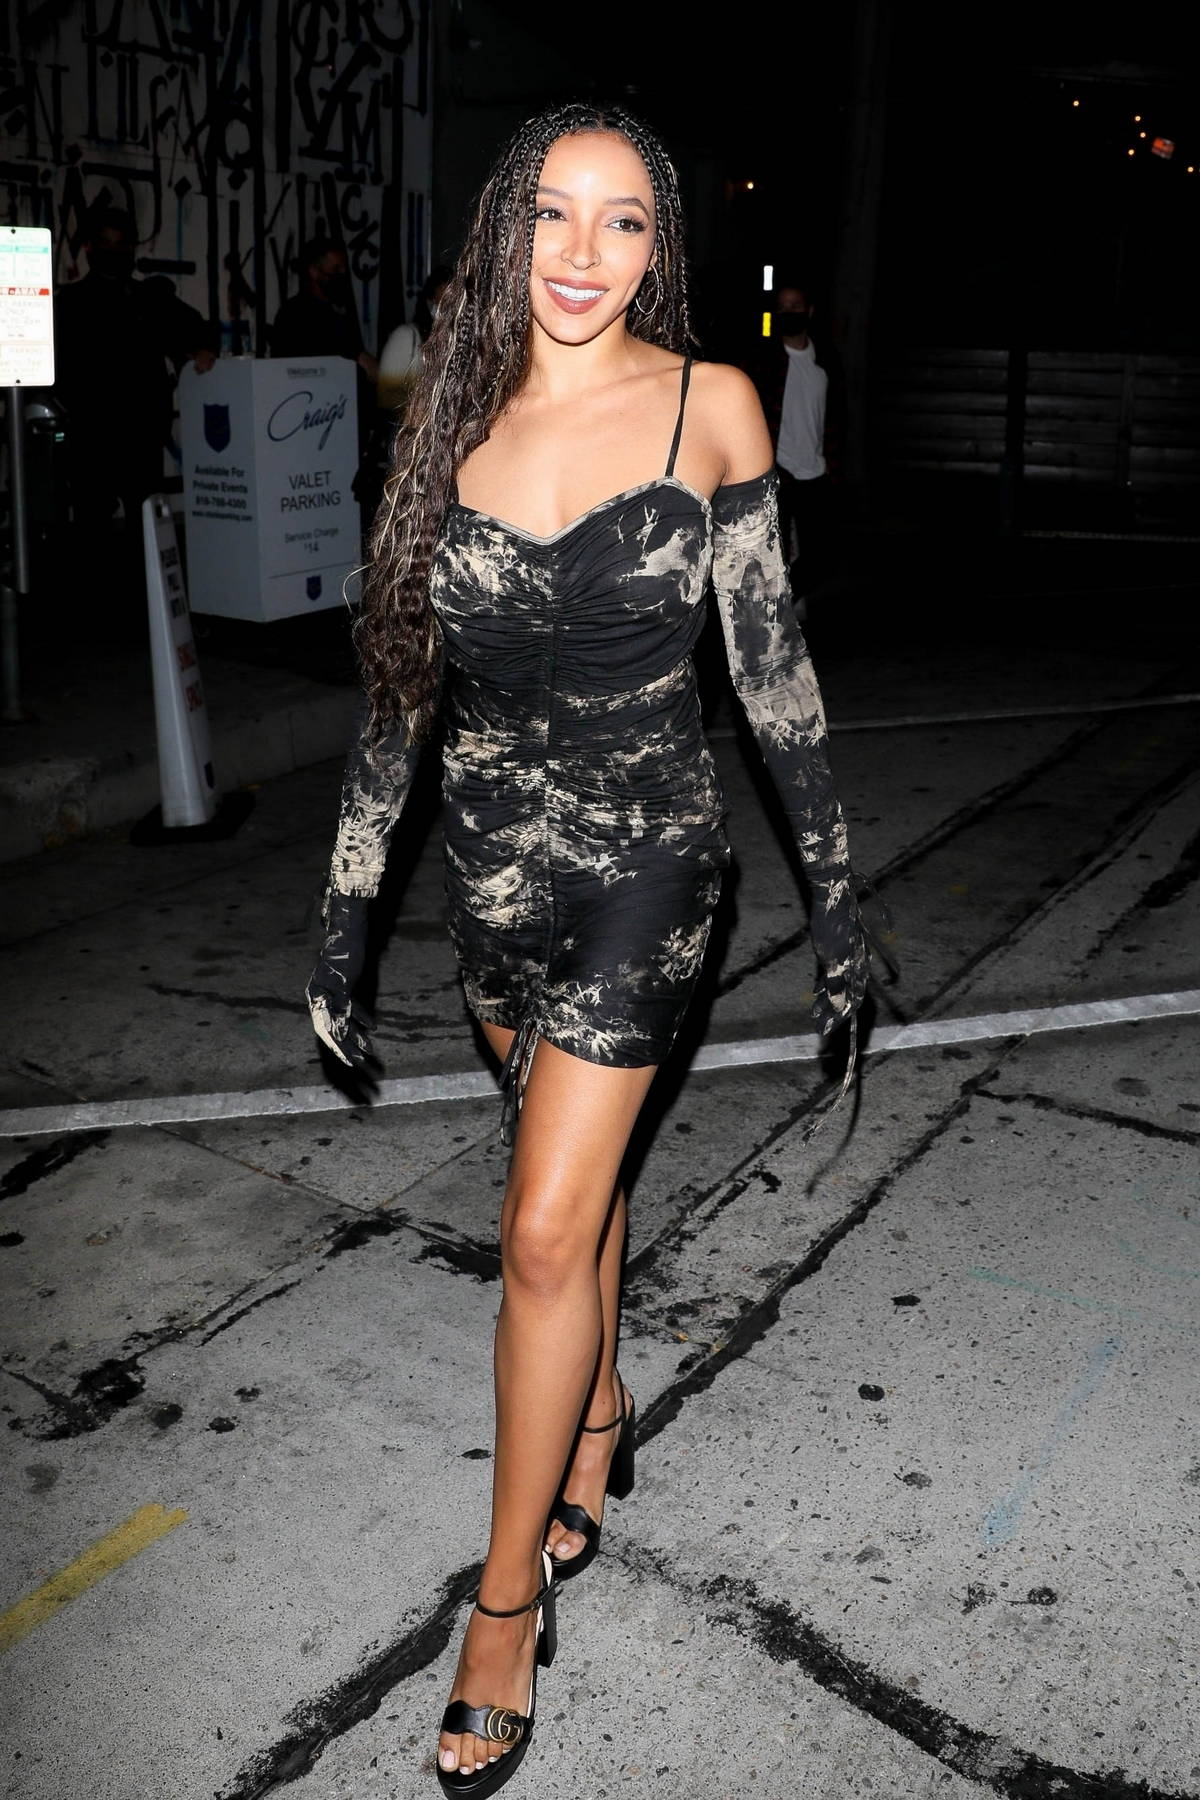 Tinashe strikes a pose while leaving dinner with friends at Craig's in West Hollywood, California